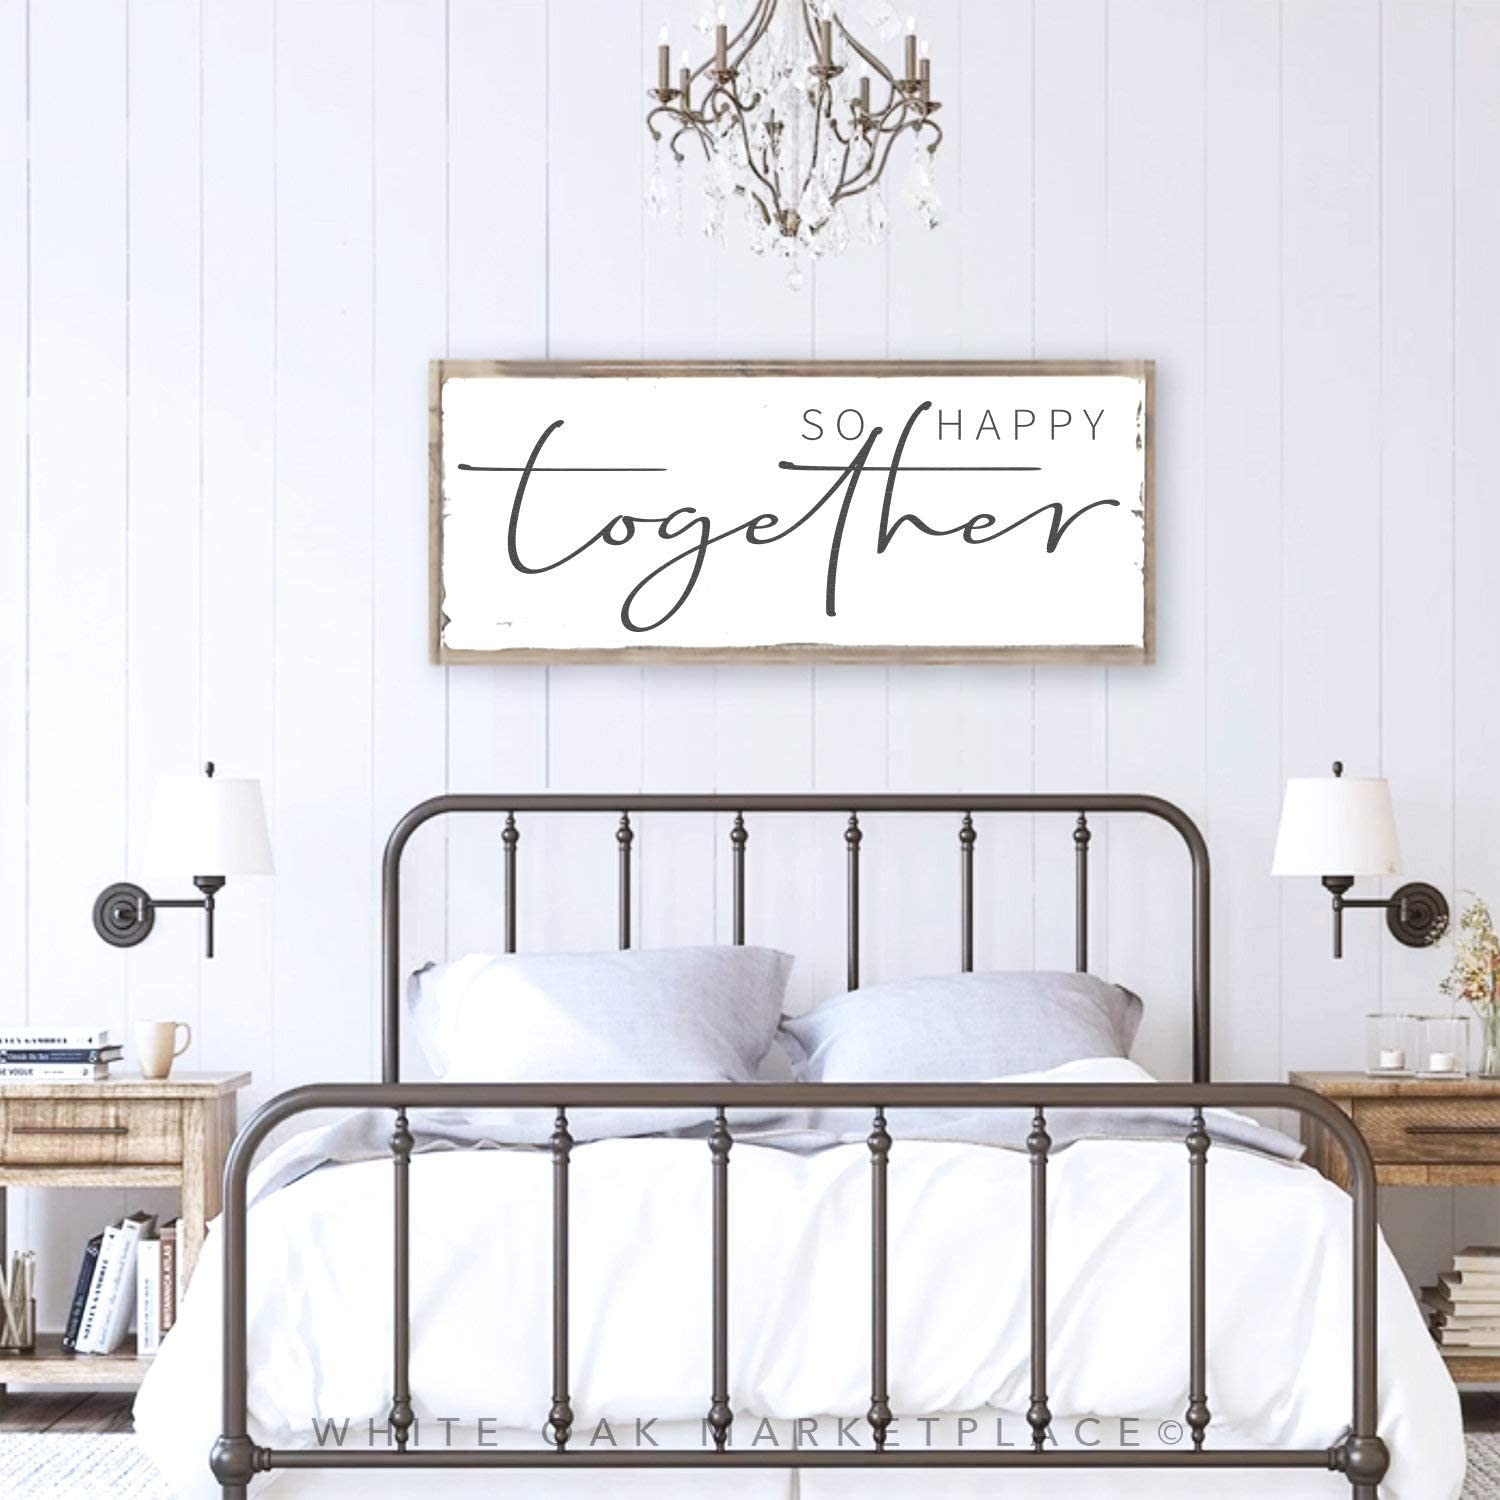 So Happy Together Above Bed Decor Master Bedroom Decor Above Bed Signs Bedroom Decor Bedroom Signs Bedroom Wall Art Above Bed Amazon Ca Baby